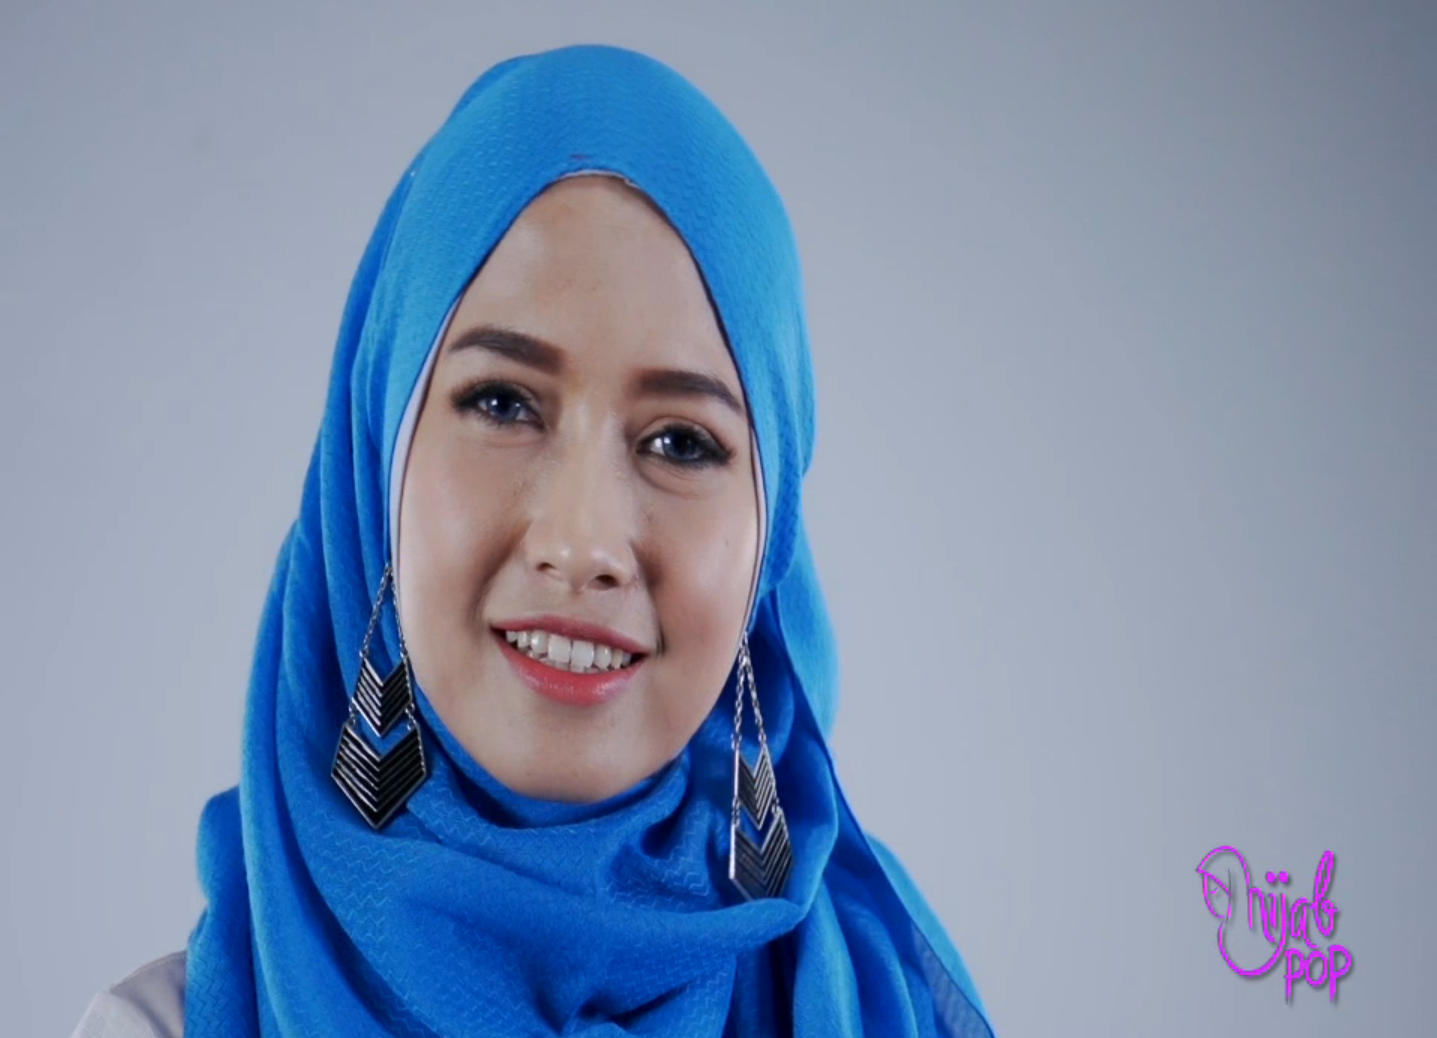 Kreasi Hijab Simple dengan Anting ala Pandan Sari  Tutorial Hijab